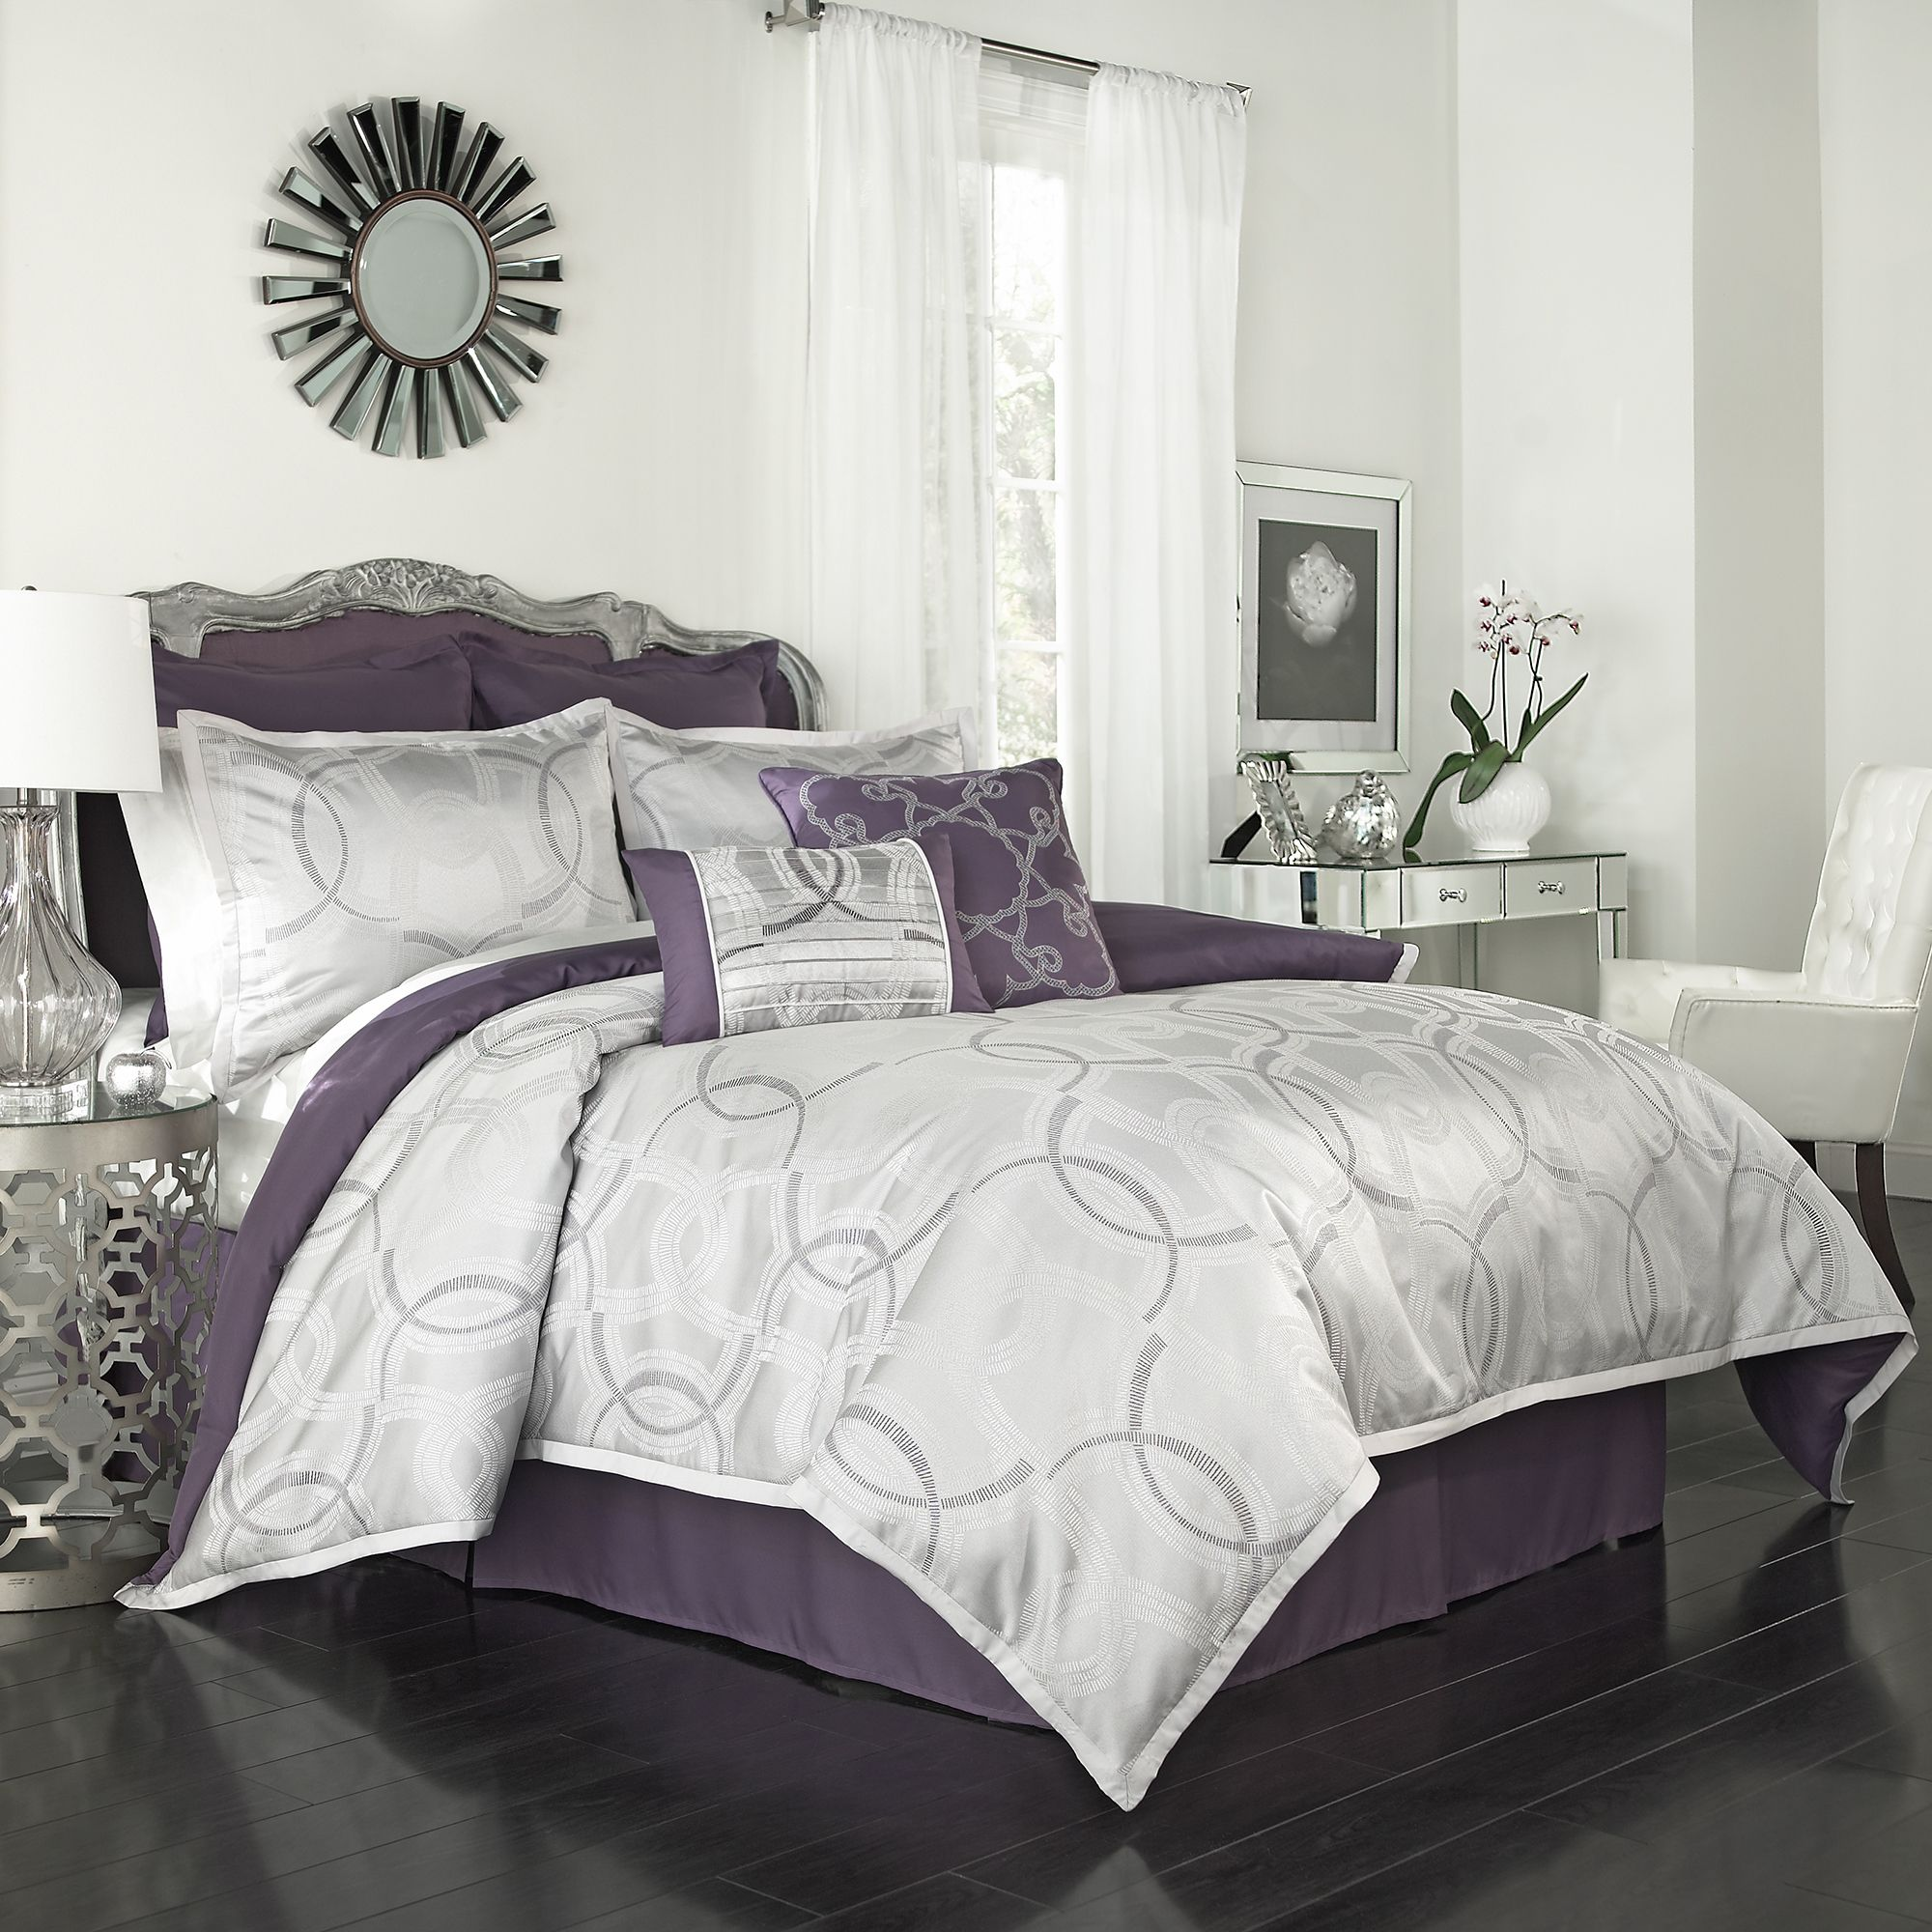 Overstock Com Online Shopping Bedding Furniture Electronics Jewelry Clothing More Comforter Sets Comfortable Bedroom Hotel Bedding Sets